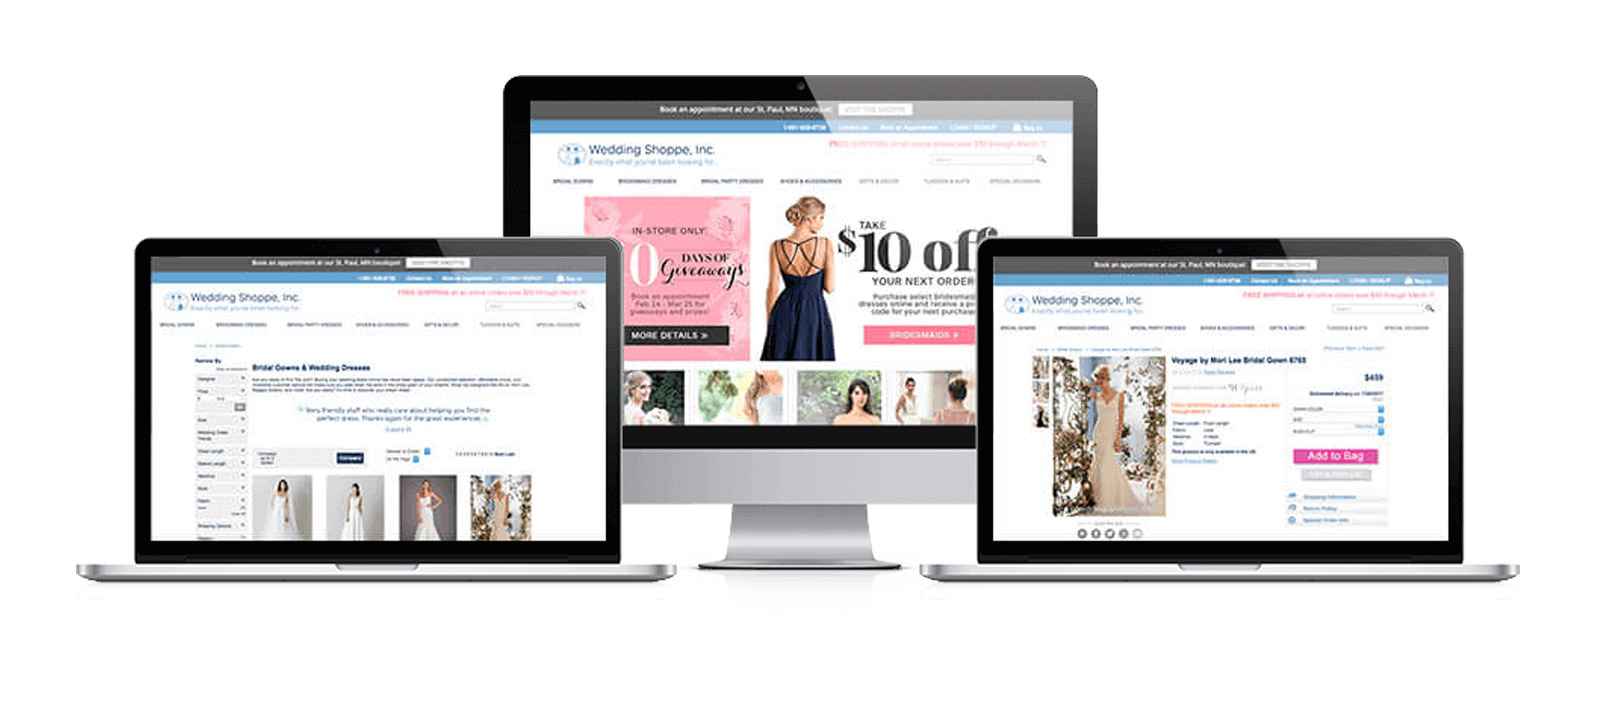 Wedding Shoppe web development